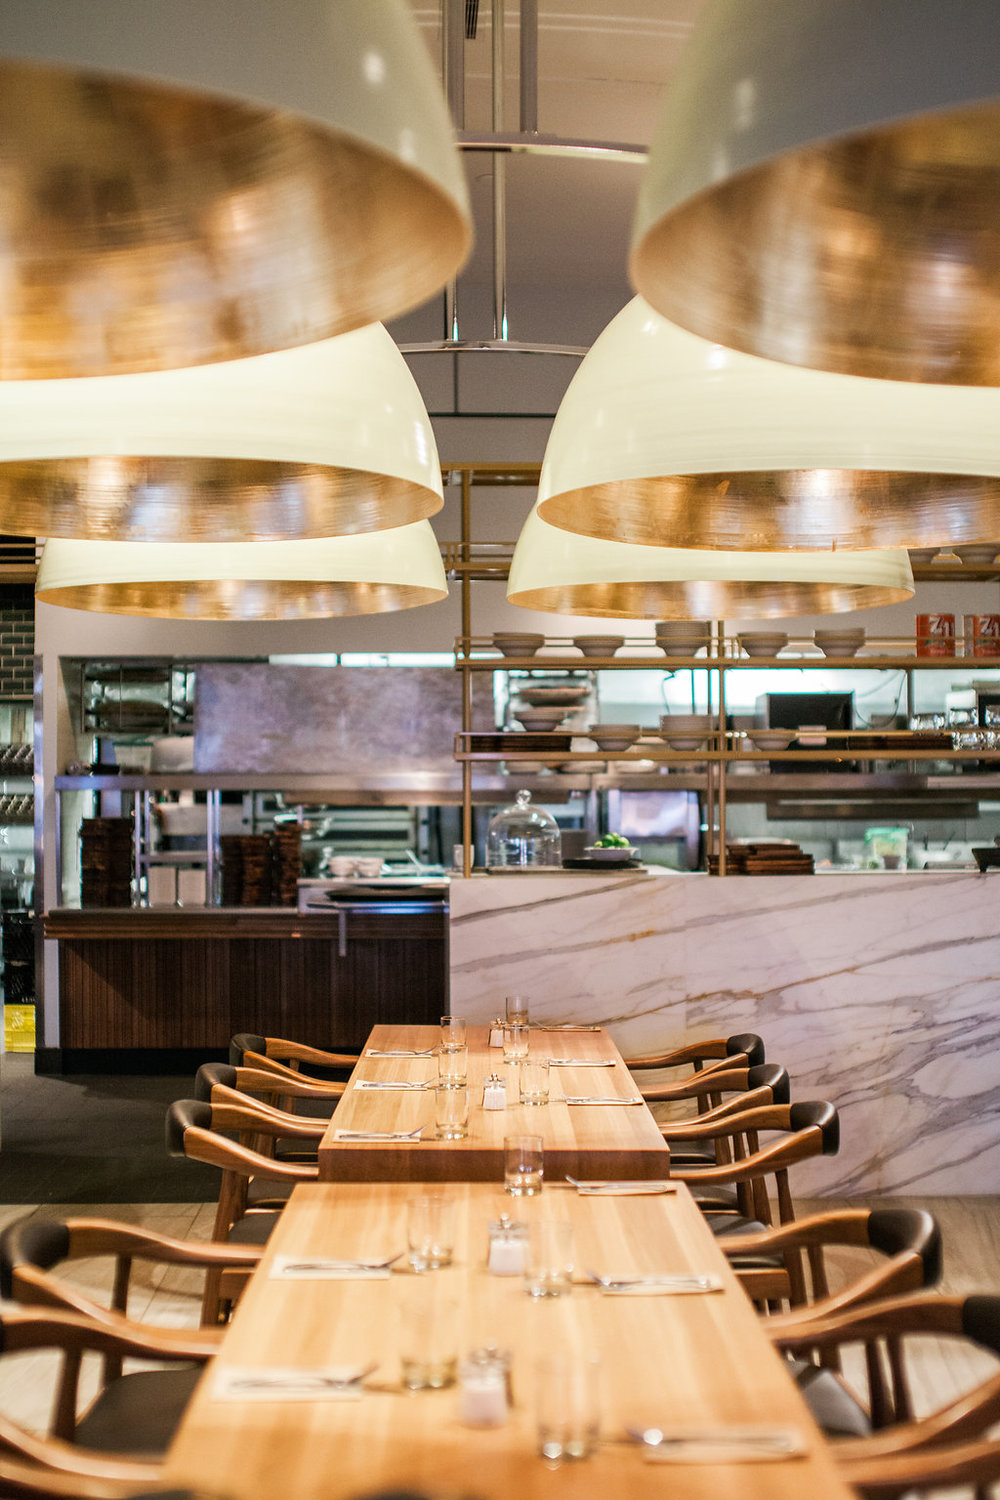 Earls Crossroads. Restaurant Architecture & Interior Design by McKinley Burkart